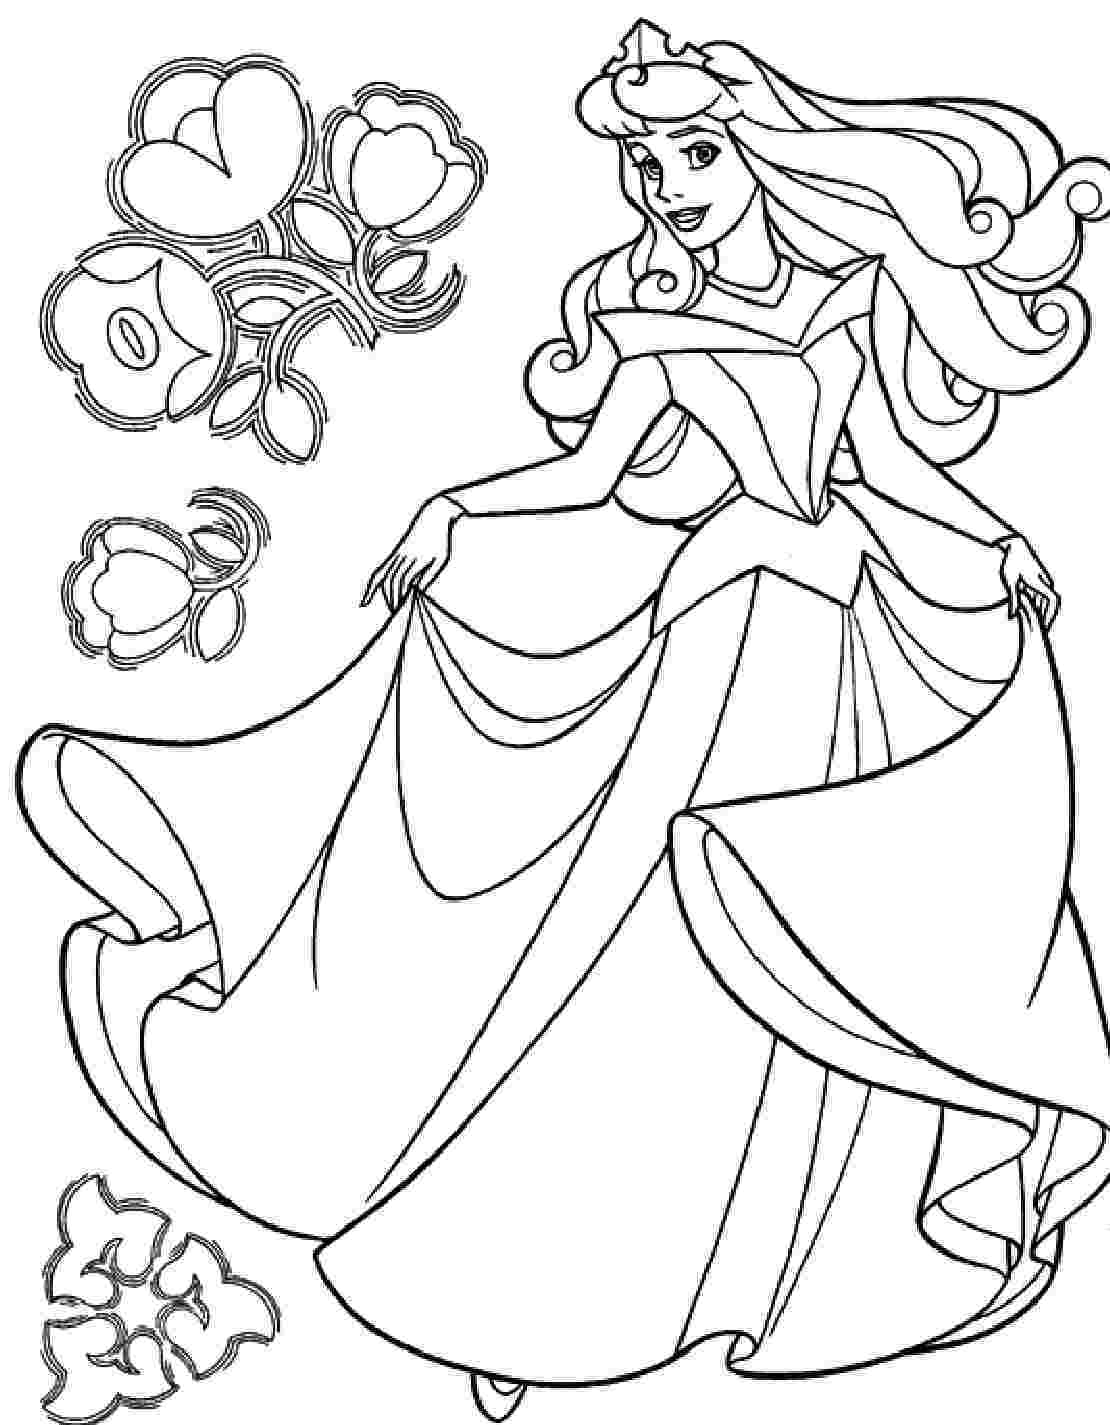 coloring cinderella pictures cinderella coloring pages to download and print for free pictures coloring cinderella